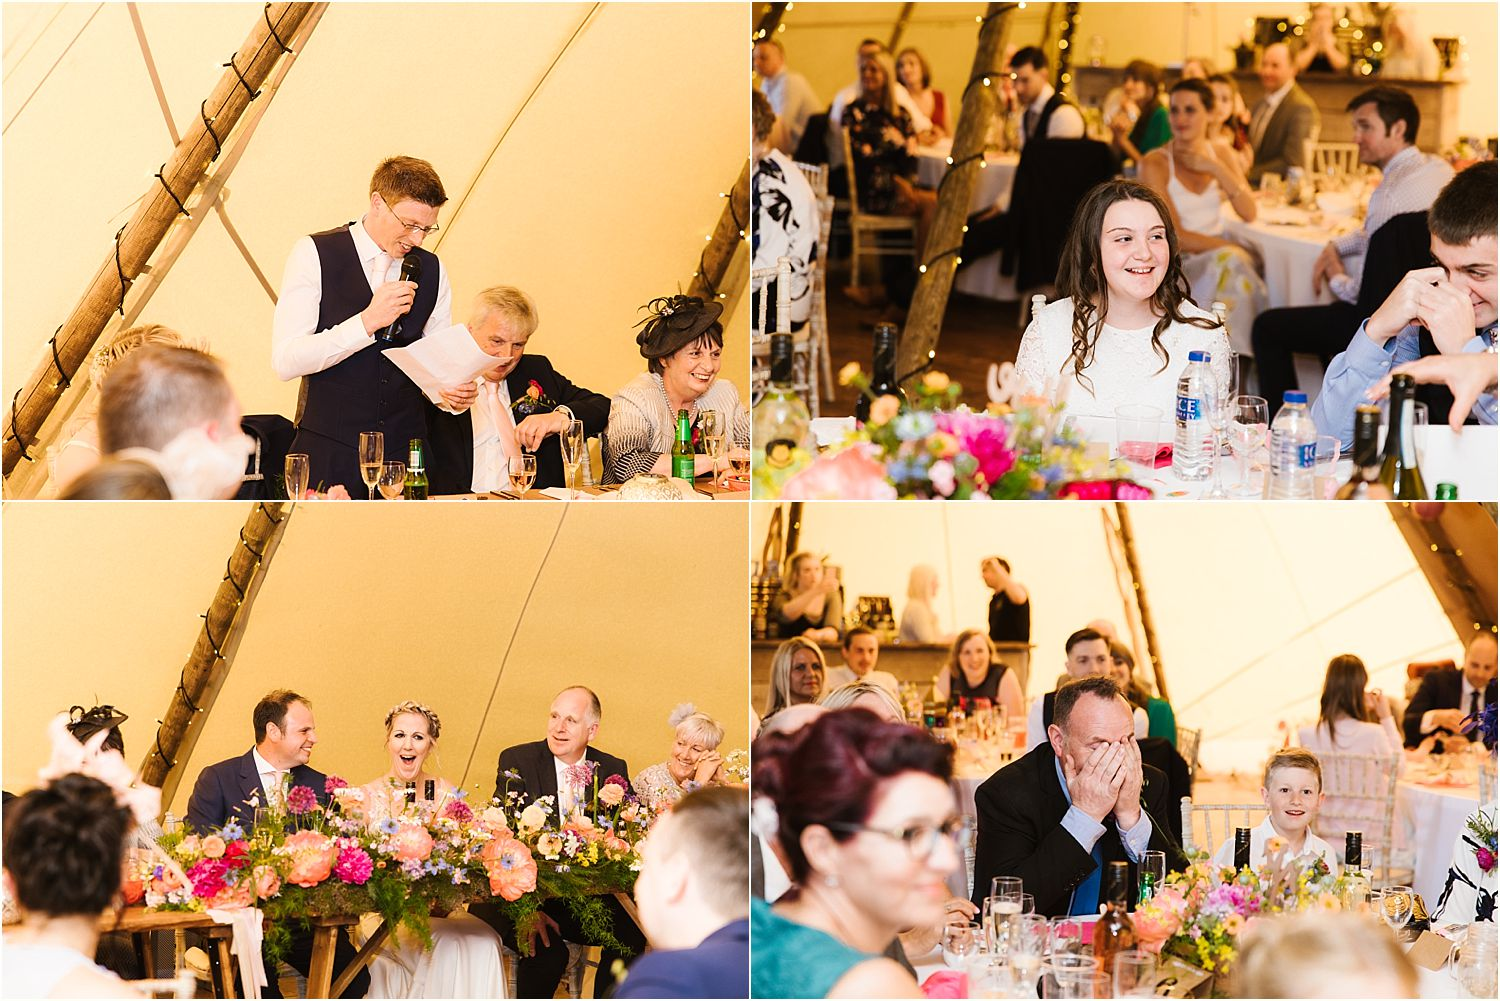 Guests enjoy best man's speech at Lancashire farm tipi wedding